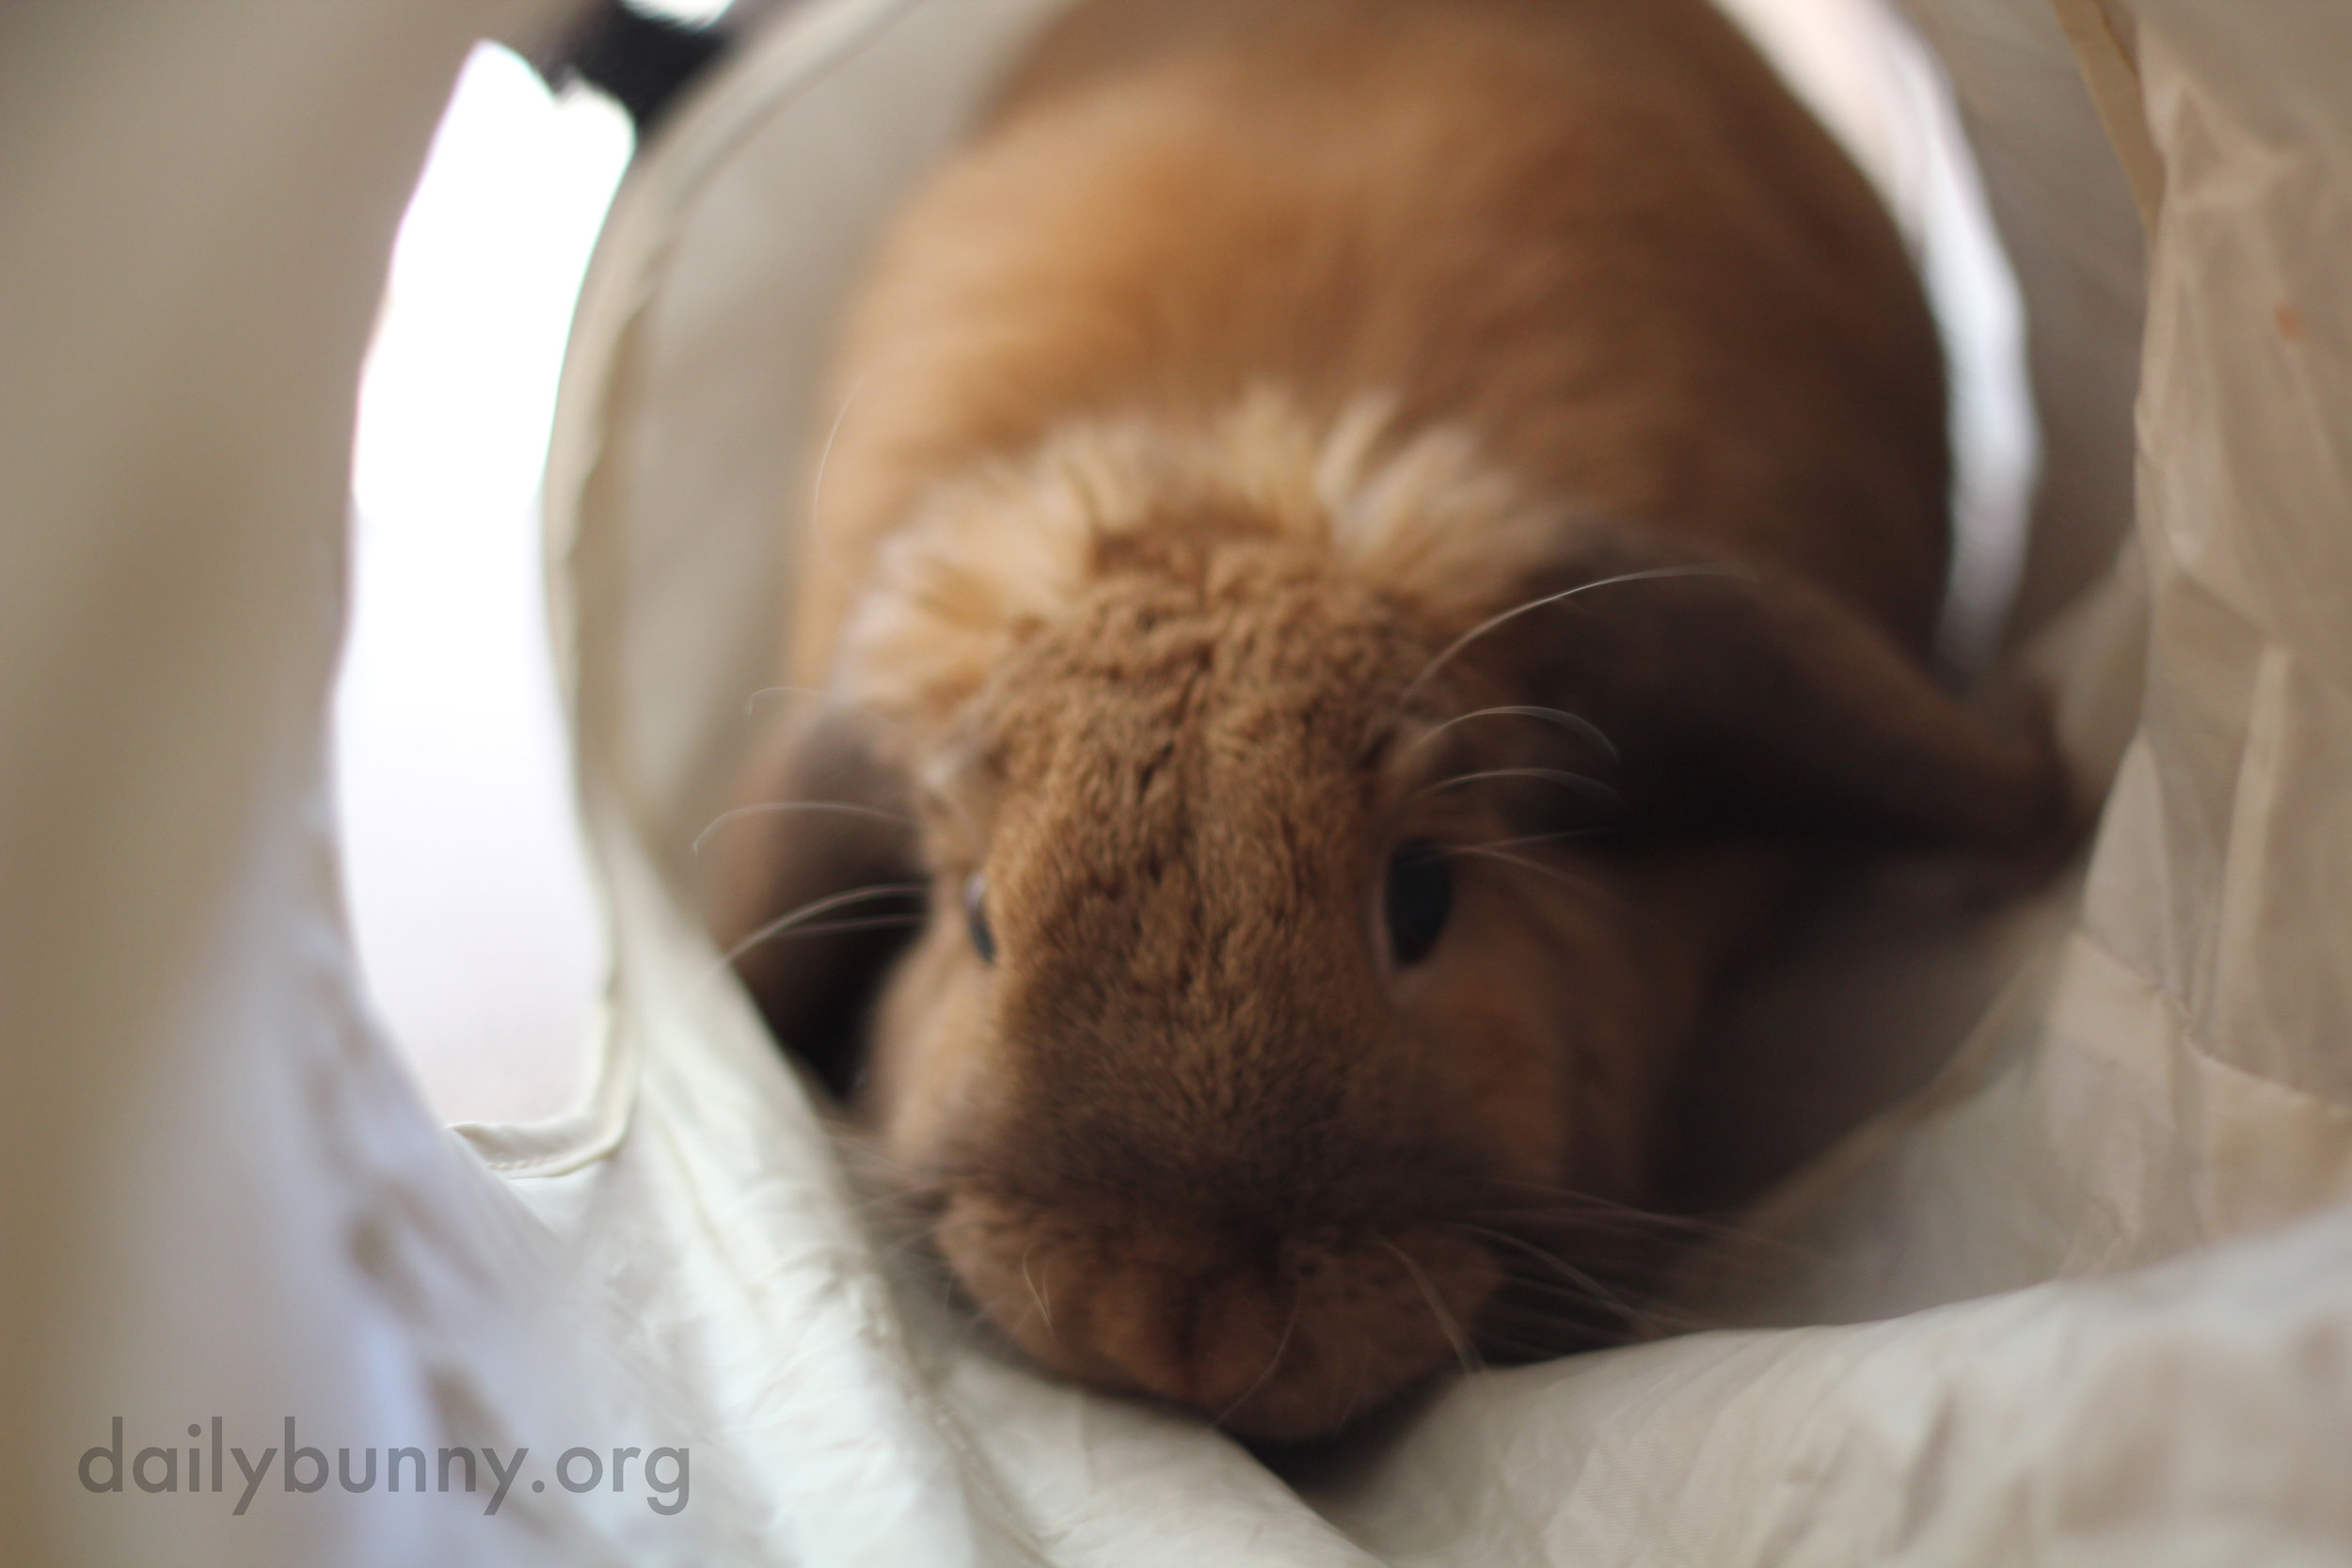 Bunny Will Travel Through Tunnels and Stand Up Tall to Be Near His Human 1